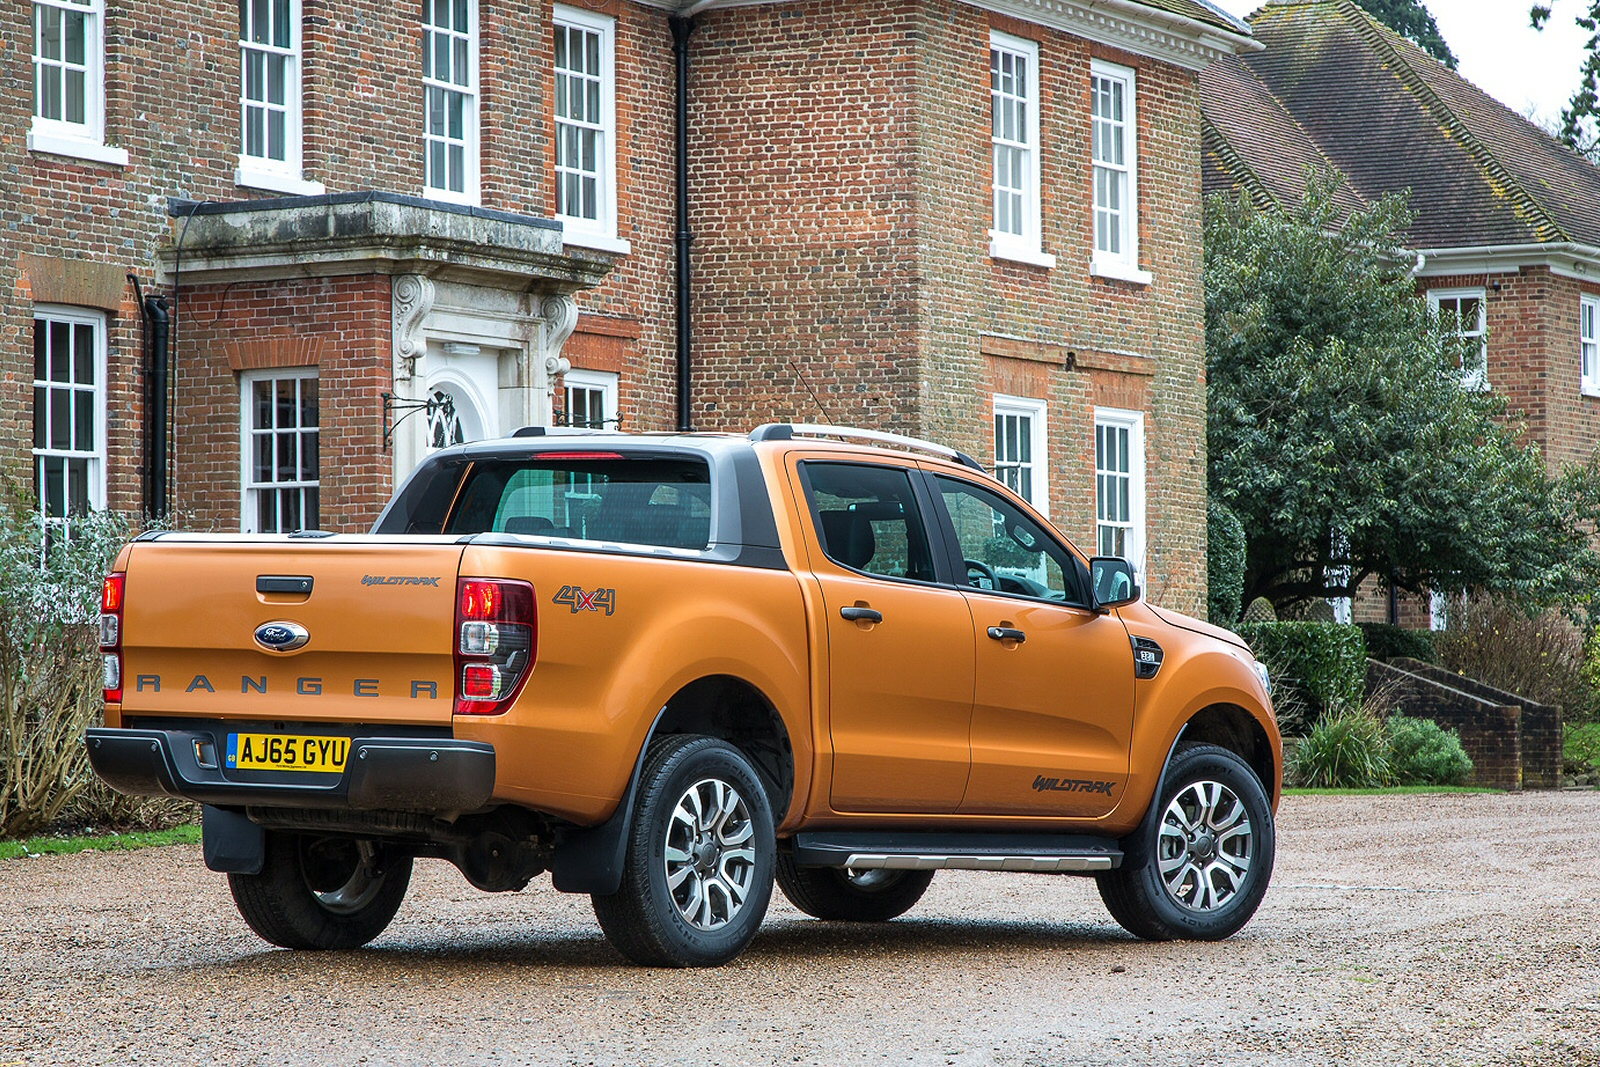 Best Pickup Truck 2018 >> New Ford Ranger Diesel Pick Up Double Cab Limited 2 2.2 Tdci for Sale | Bristol Street